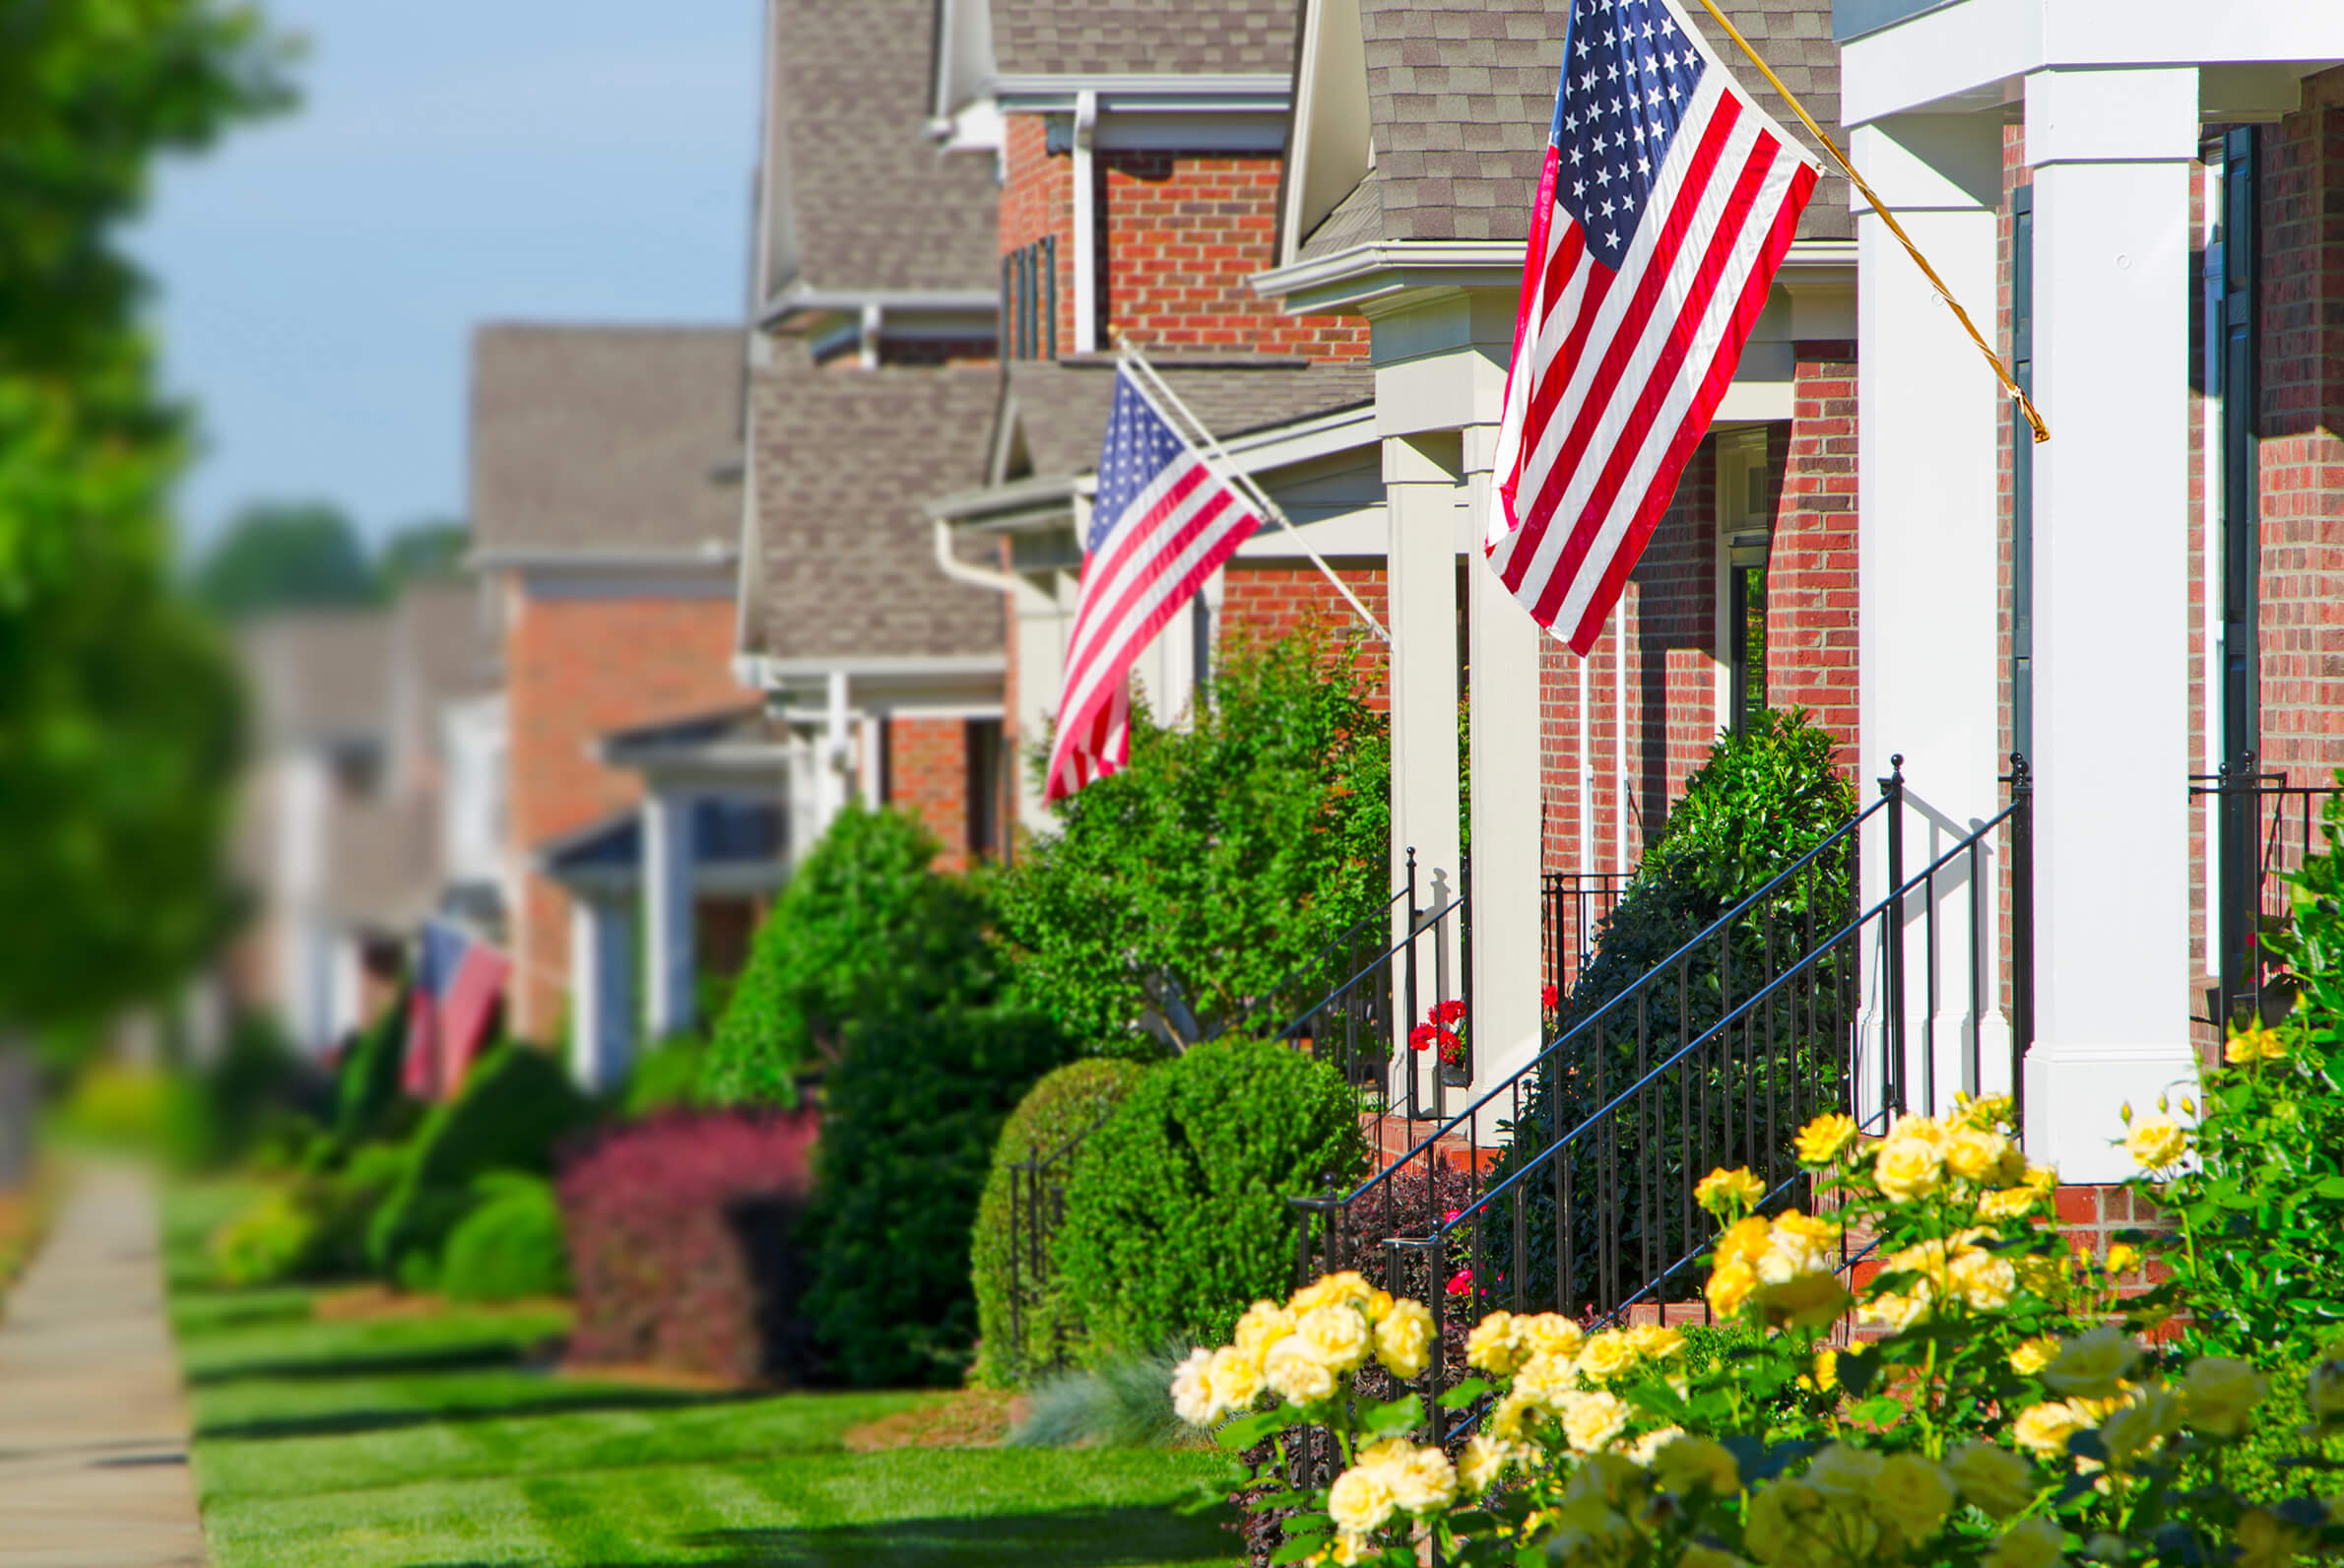 Take advantage of the summer upswing and make a lasting impression in your community.